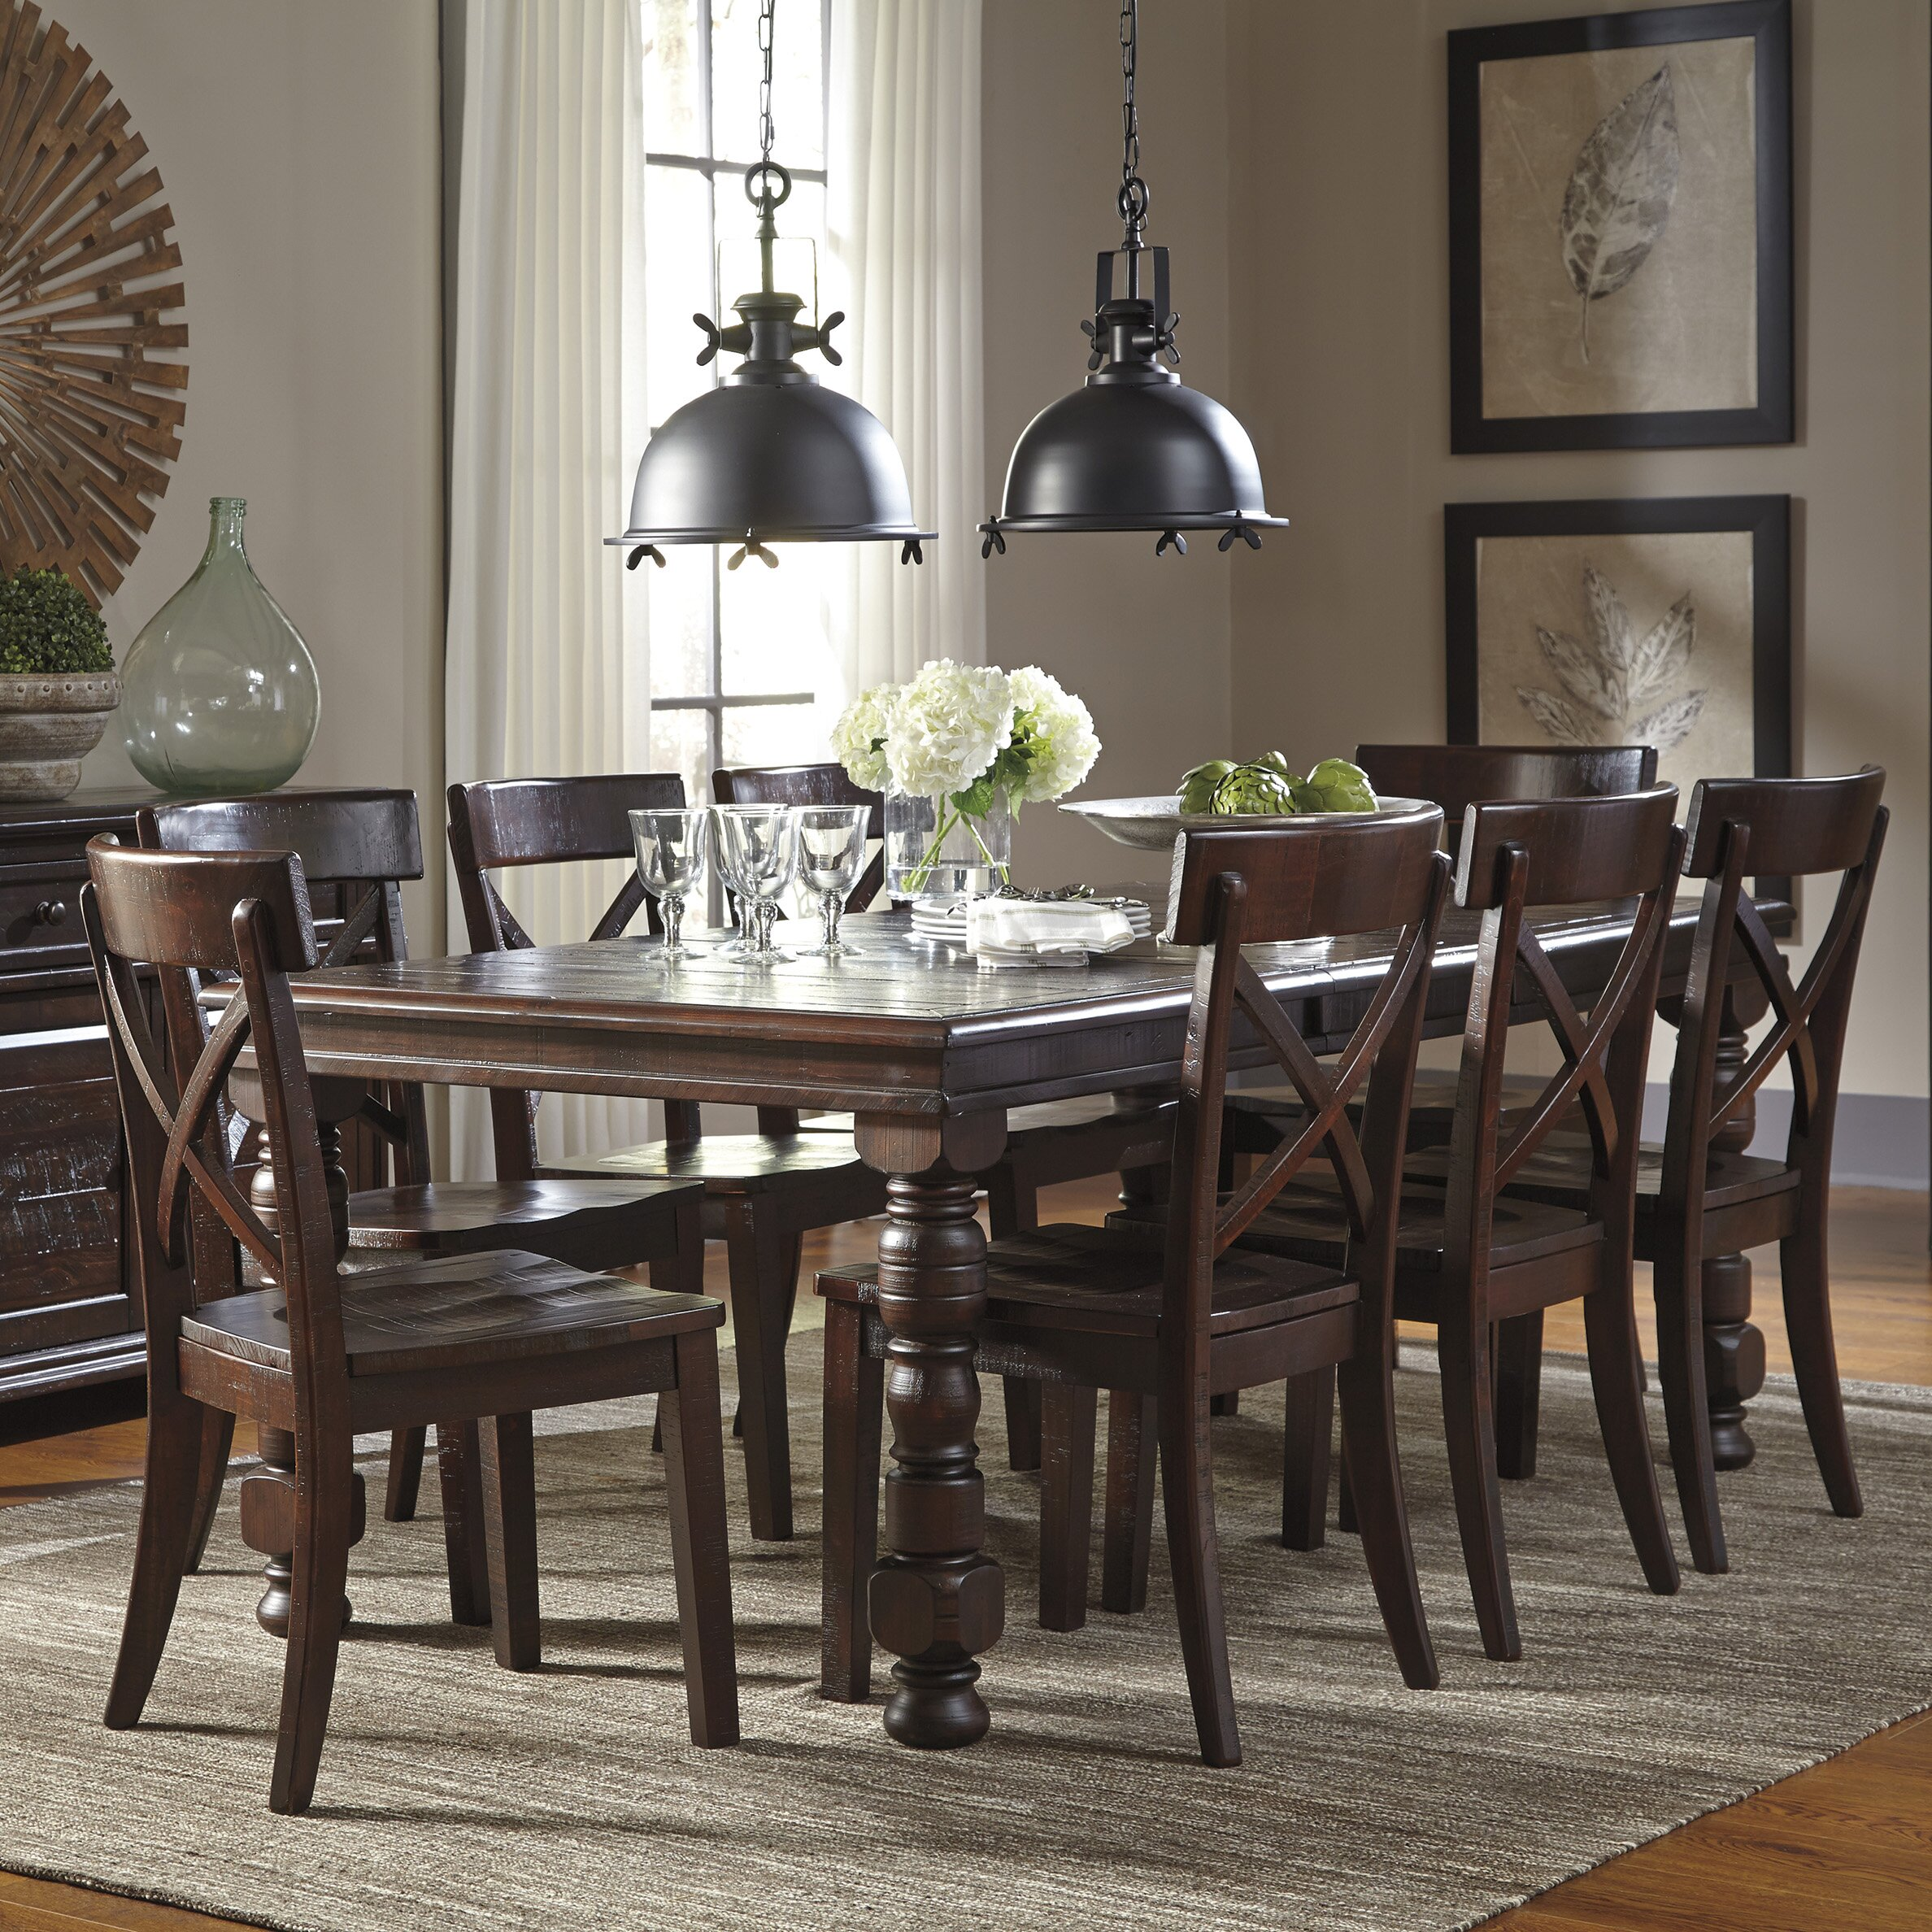 Signature Design by Ashley 9 Piece Dining Set & Reviews